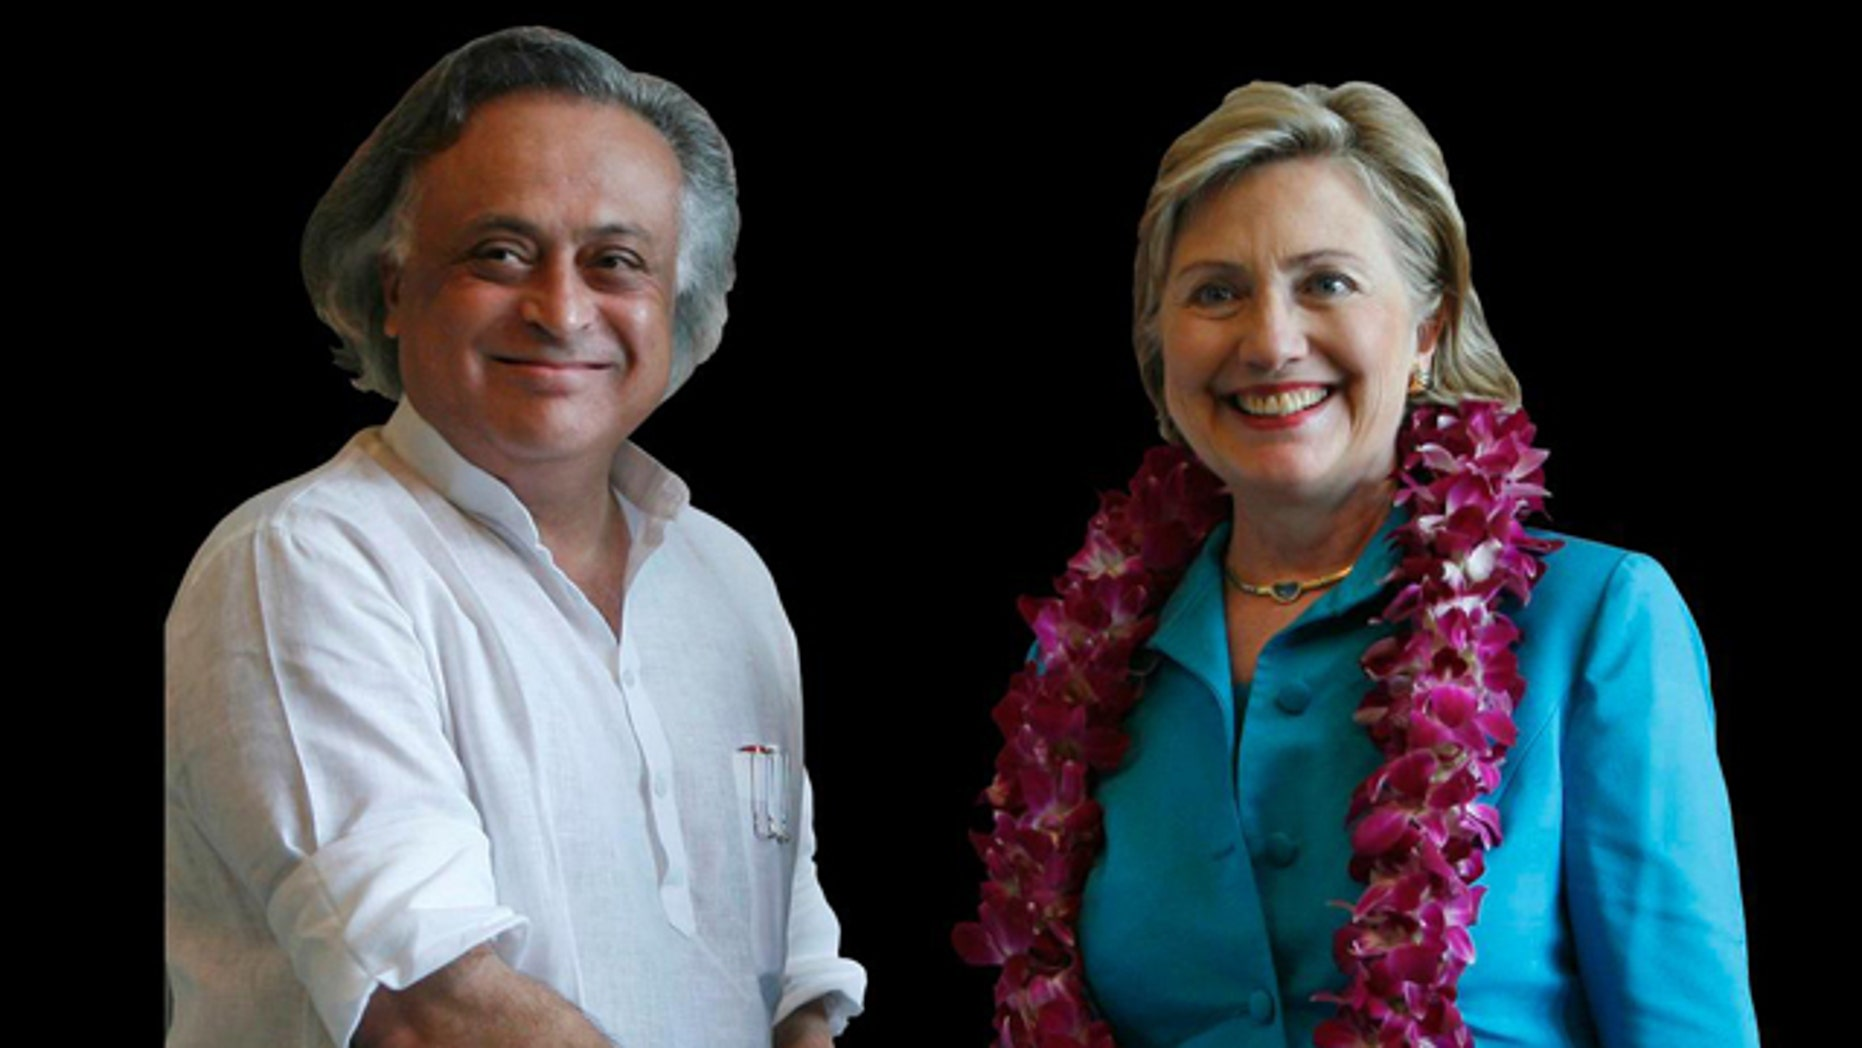 Jairam Ramesh, India's Junior Minister for Environment and Forests, and Hillary Rodham Clinton, US Secretary of State, shake hands in New Delhi, India.